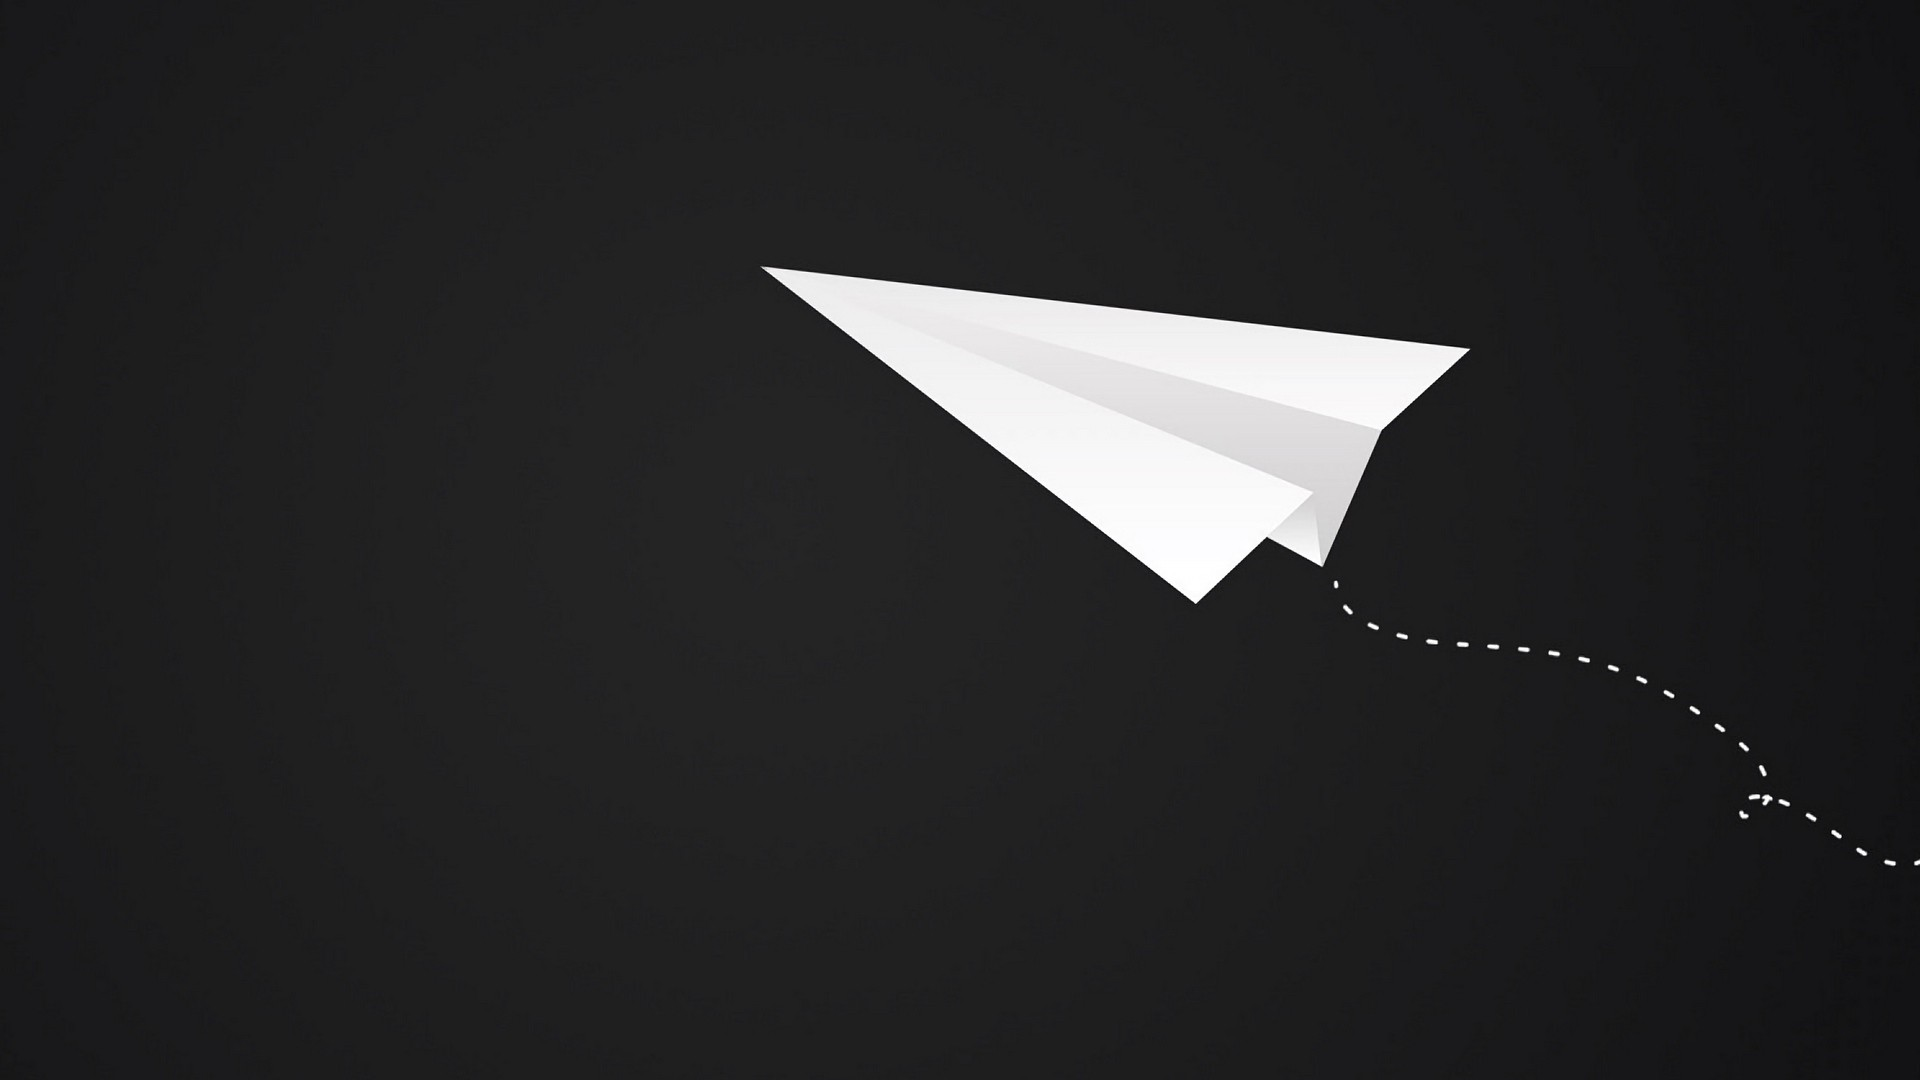 Airplane Minimalist wallpaper for pc